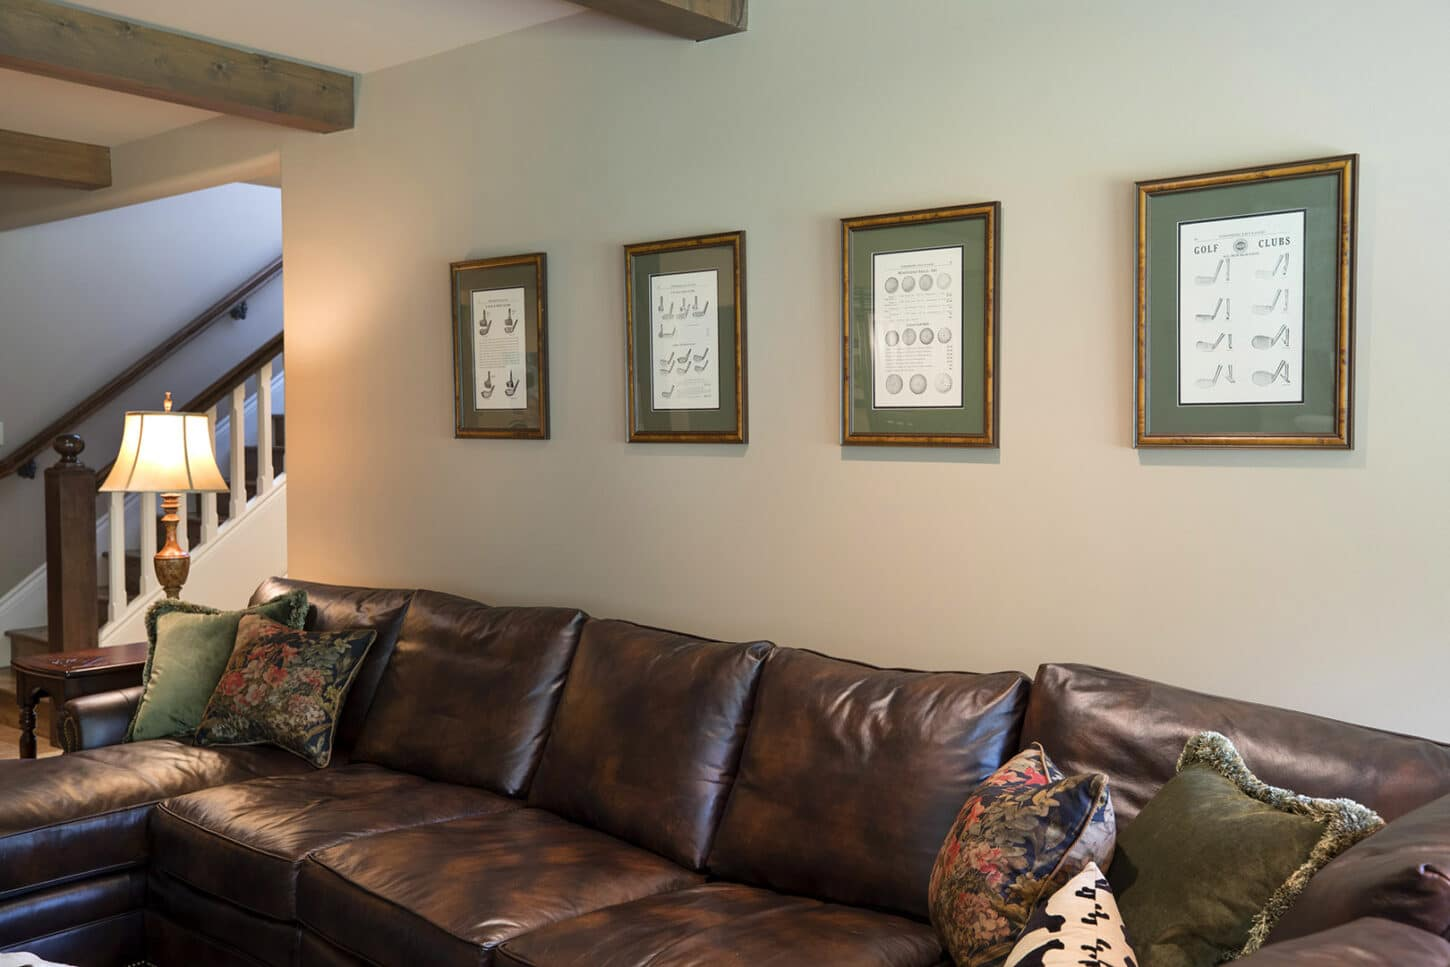 Flint Hills National Family Room